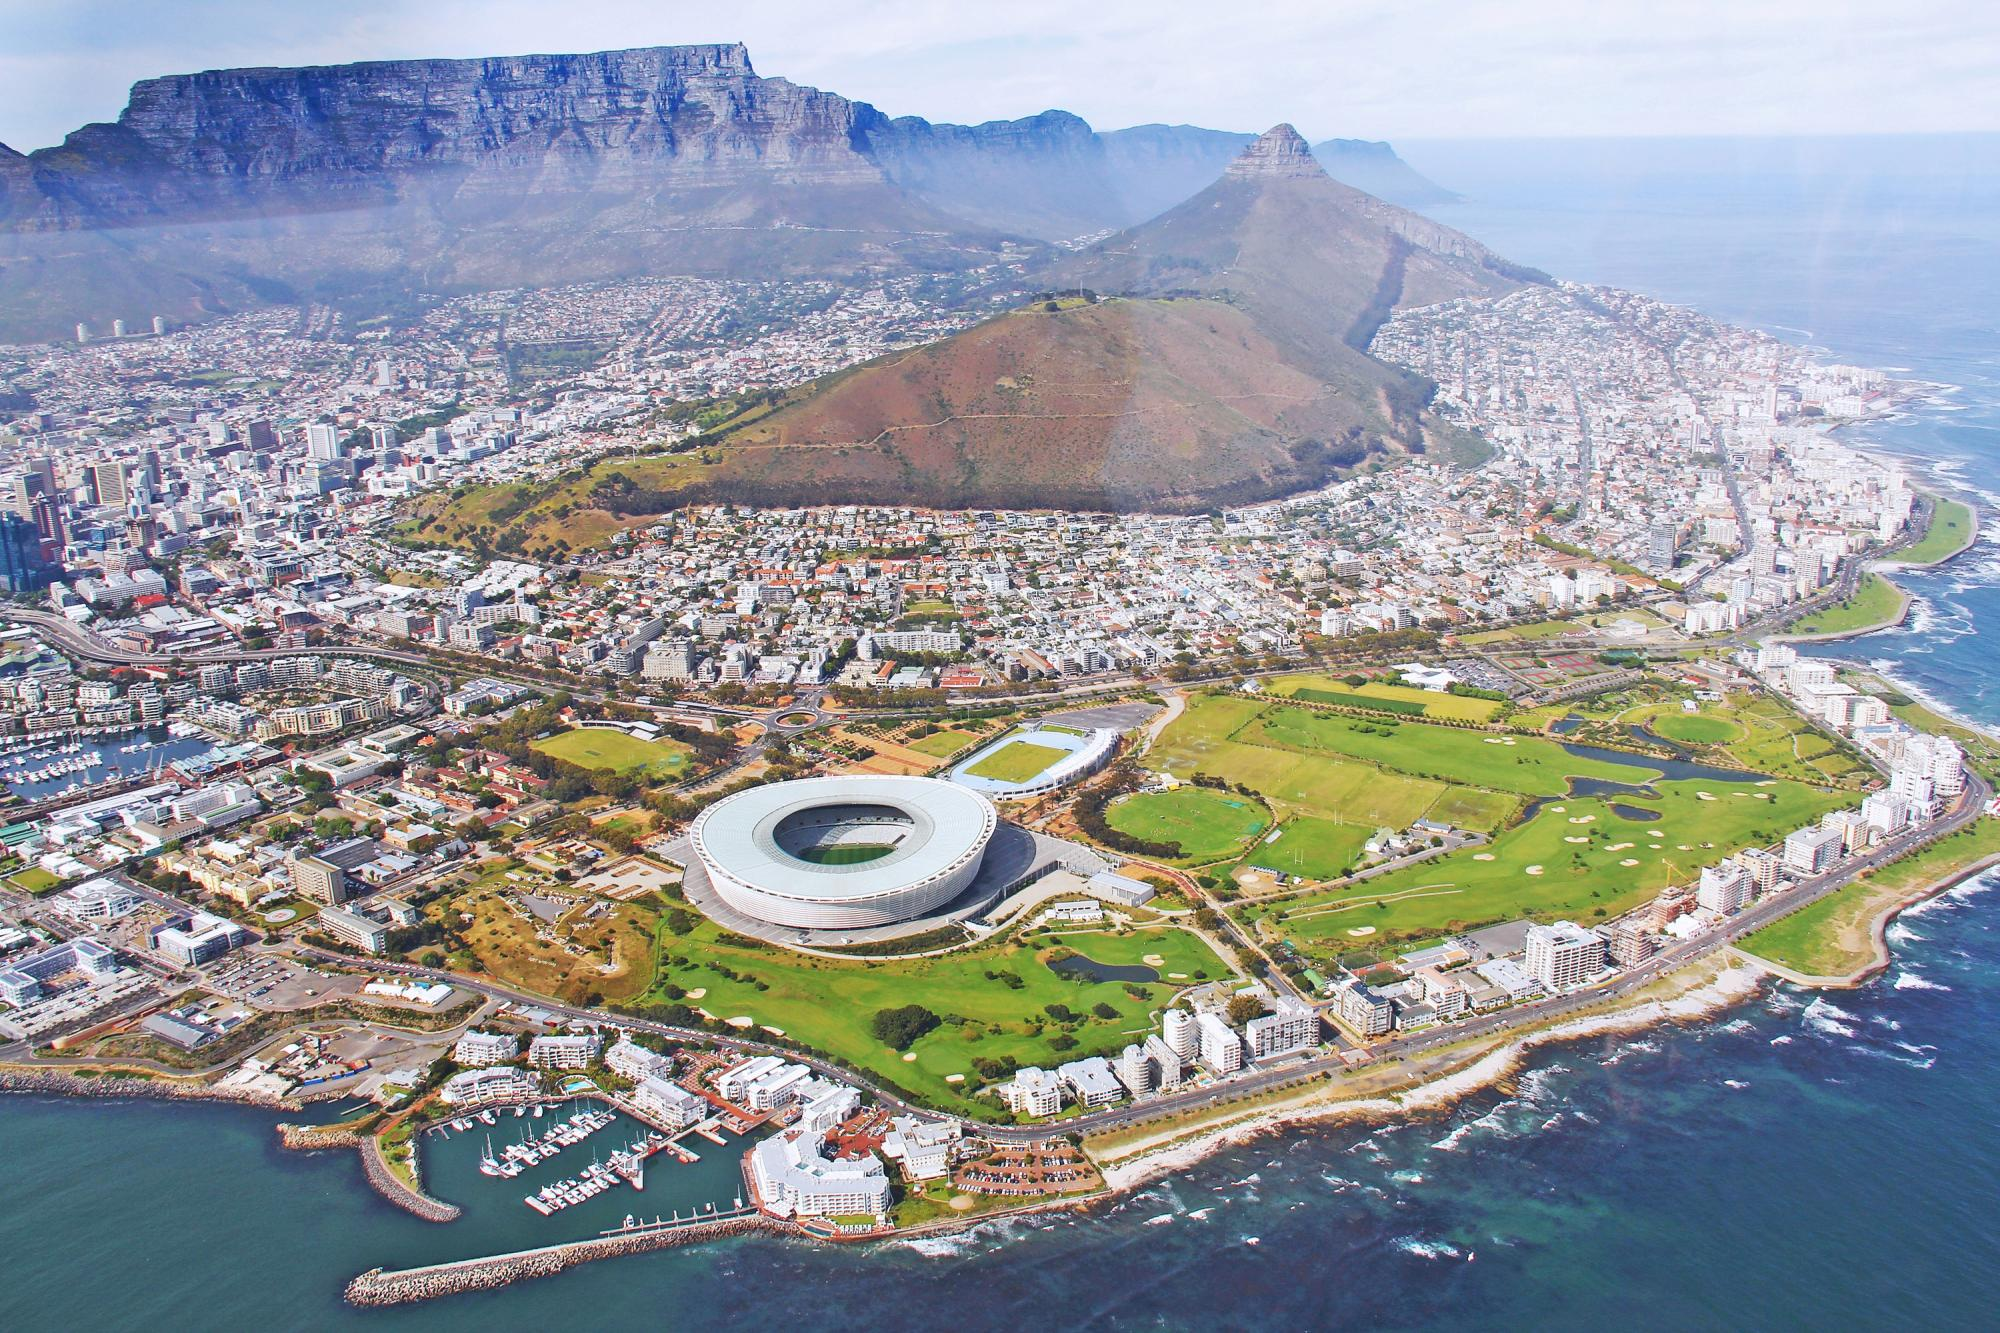 Cape Town's water supply is dependent on surface water, which is in short supply due to a multiyear drought.